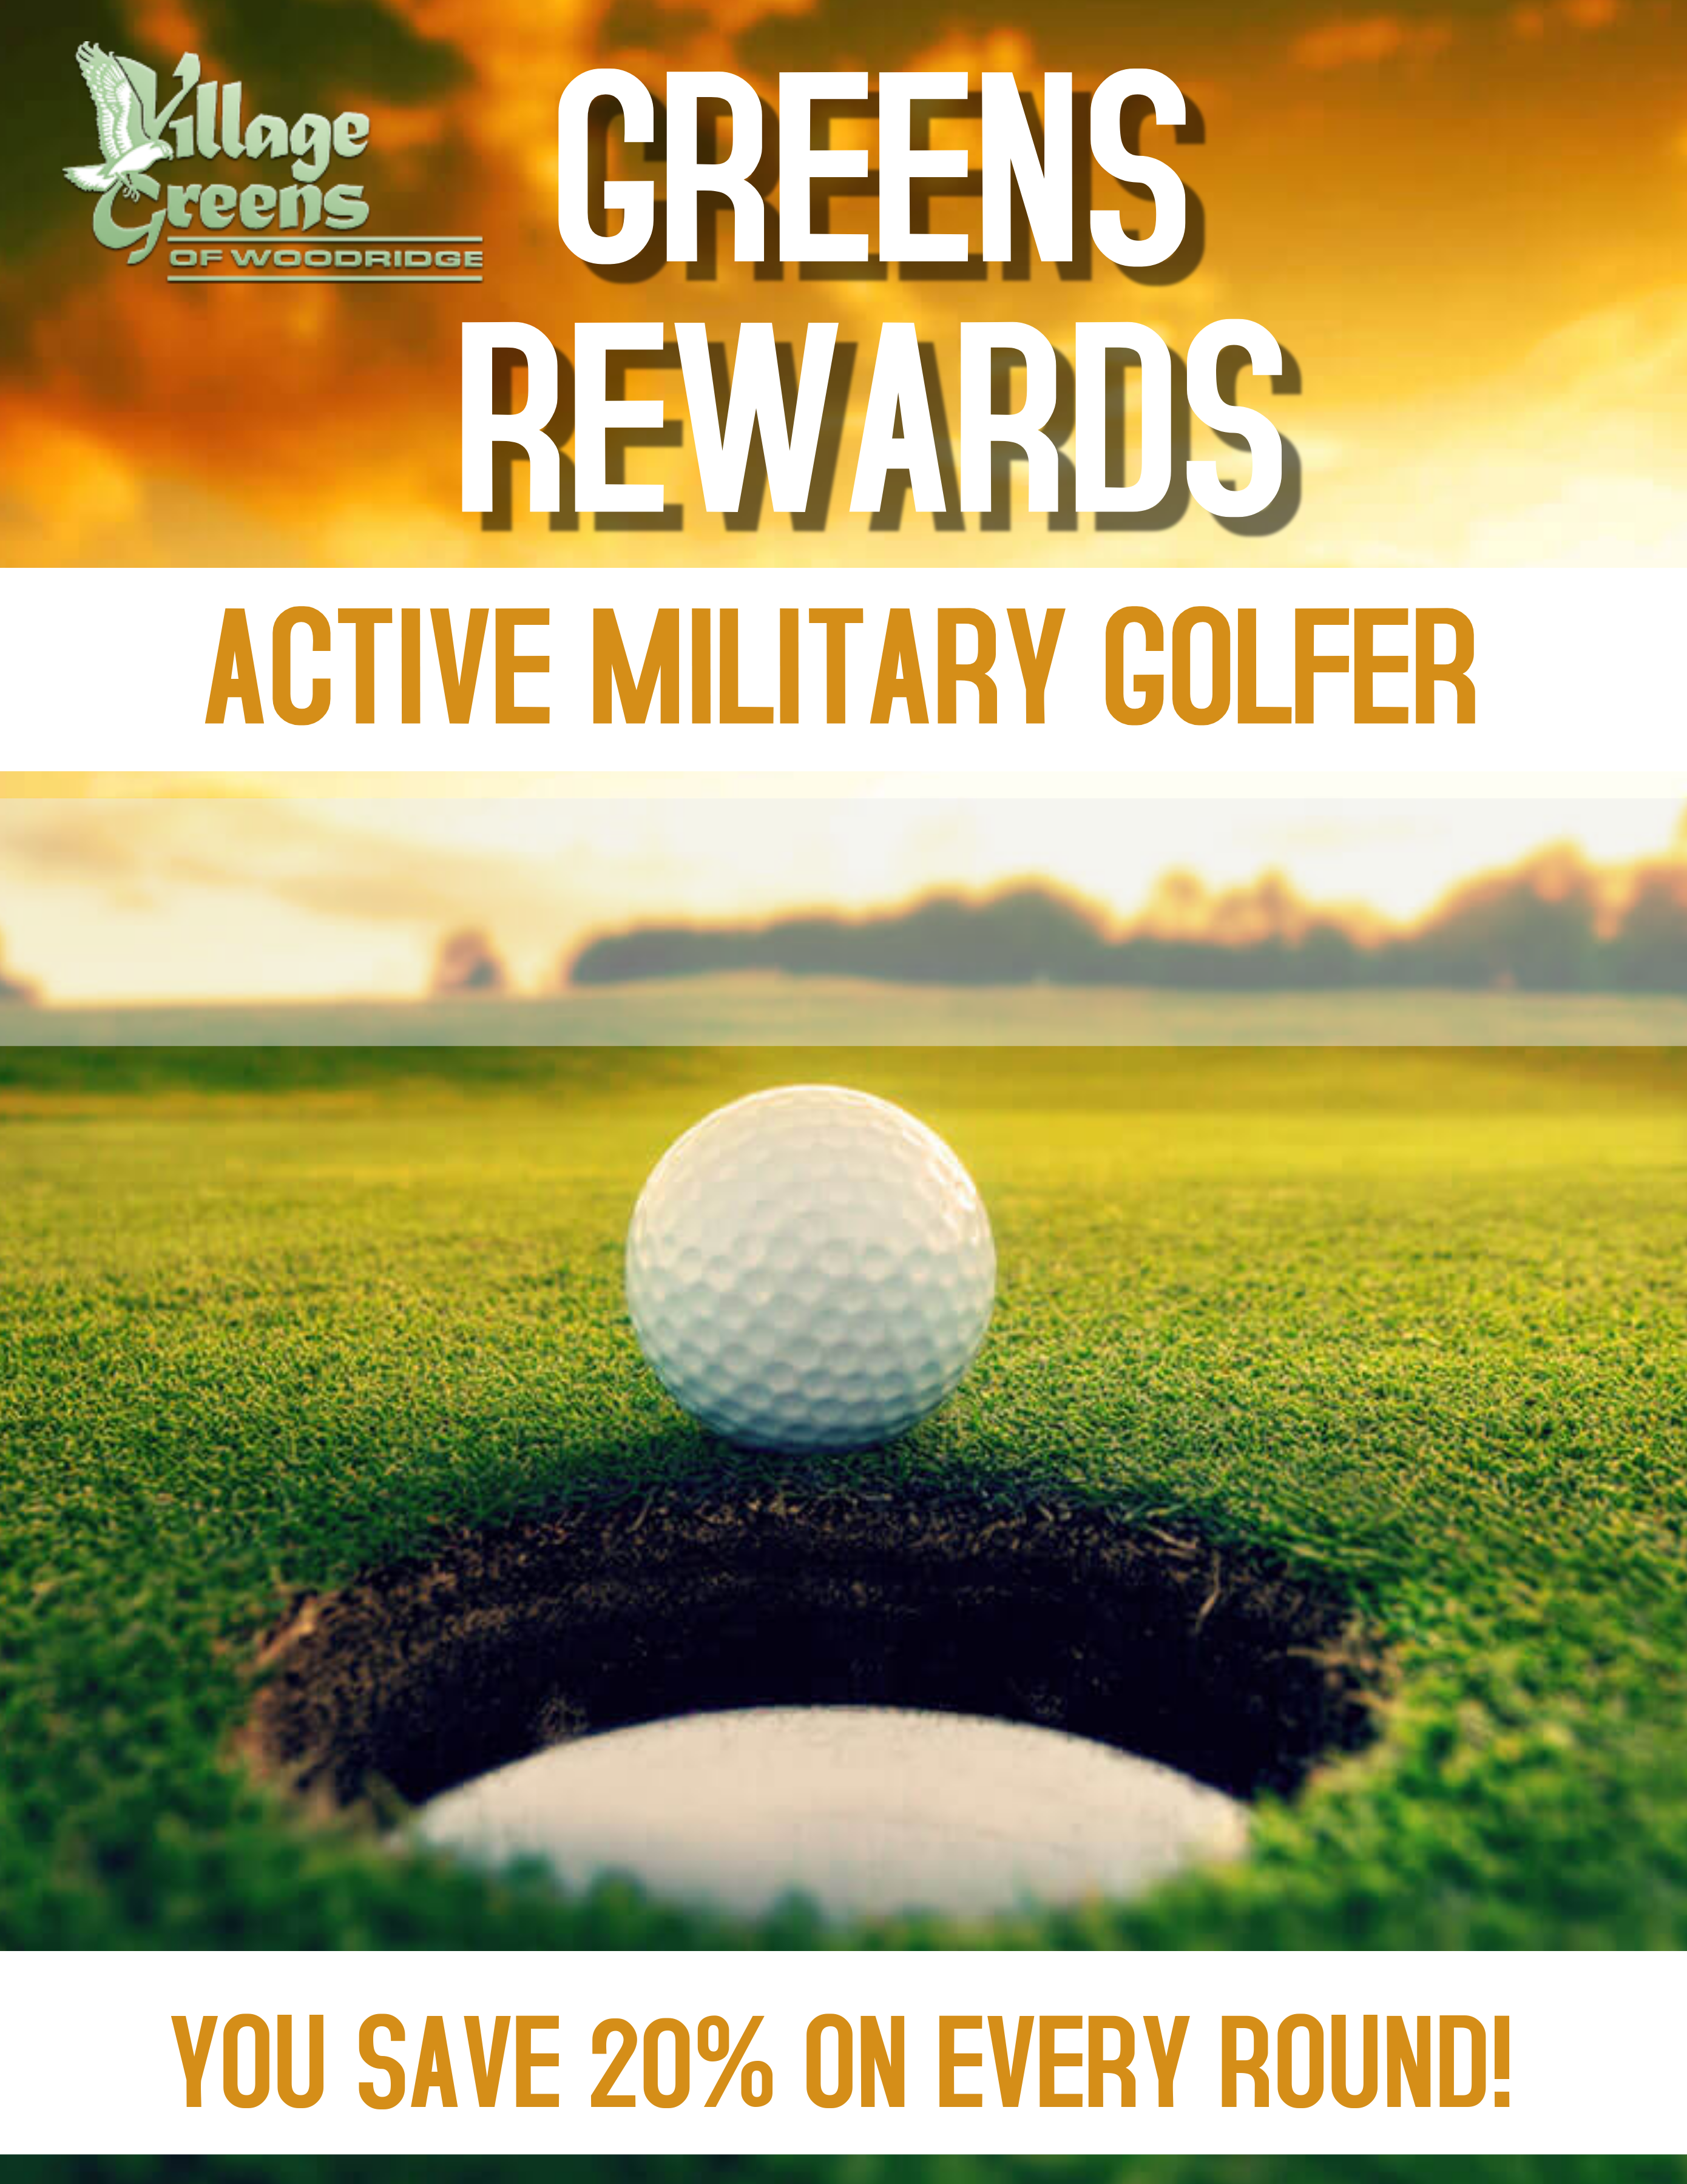 Greens Rewards Active Military